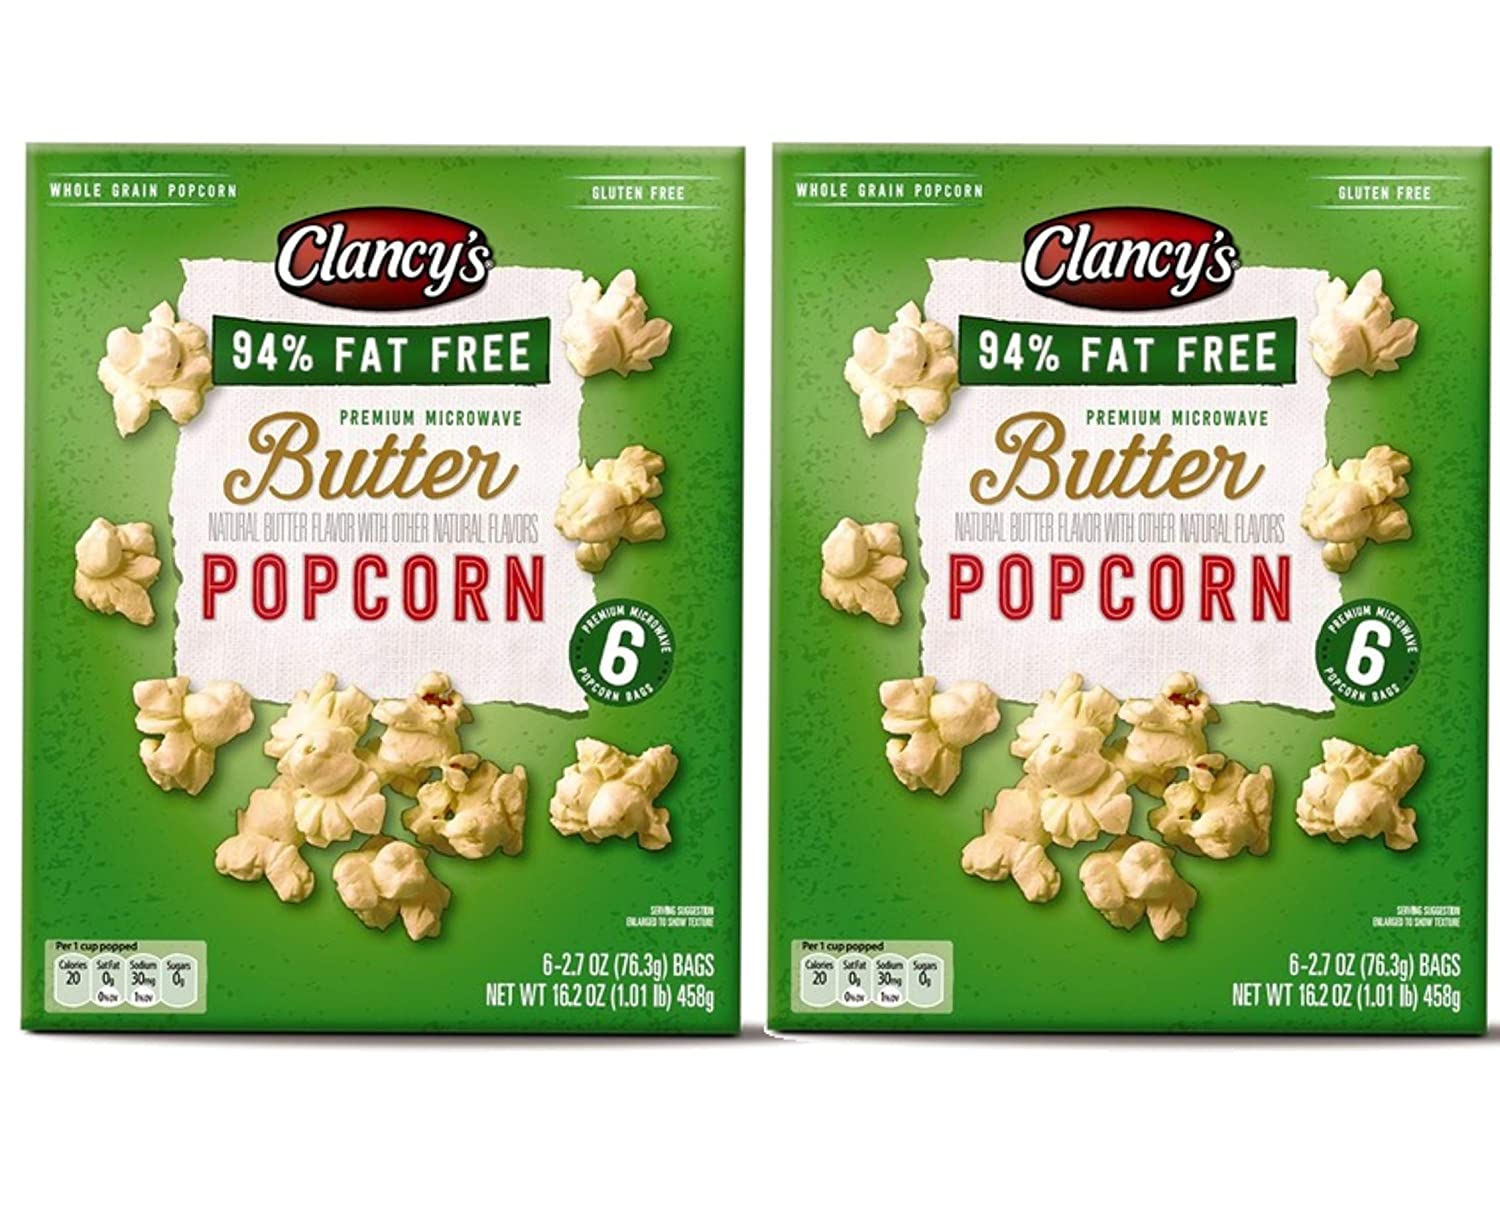 Clancy's Gluten-Free Fat-Free Whole Grain Natural Butter Popcorn Premium Microwave Bags - 2 Pk (12 ct)